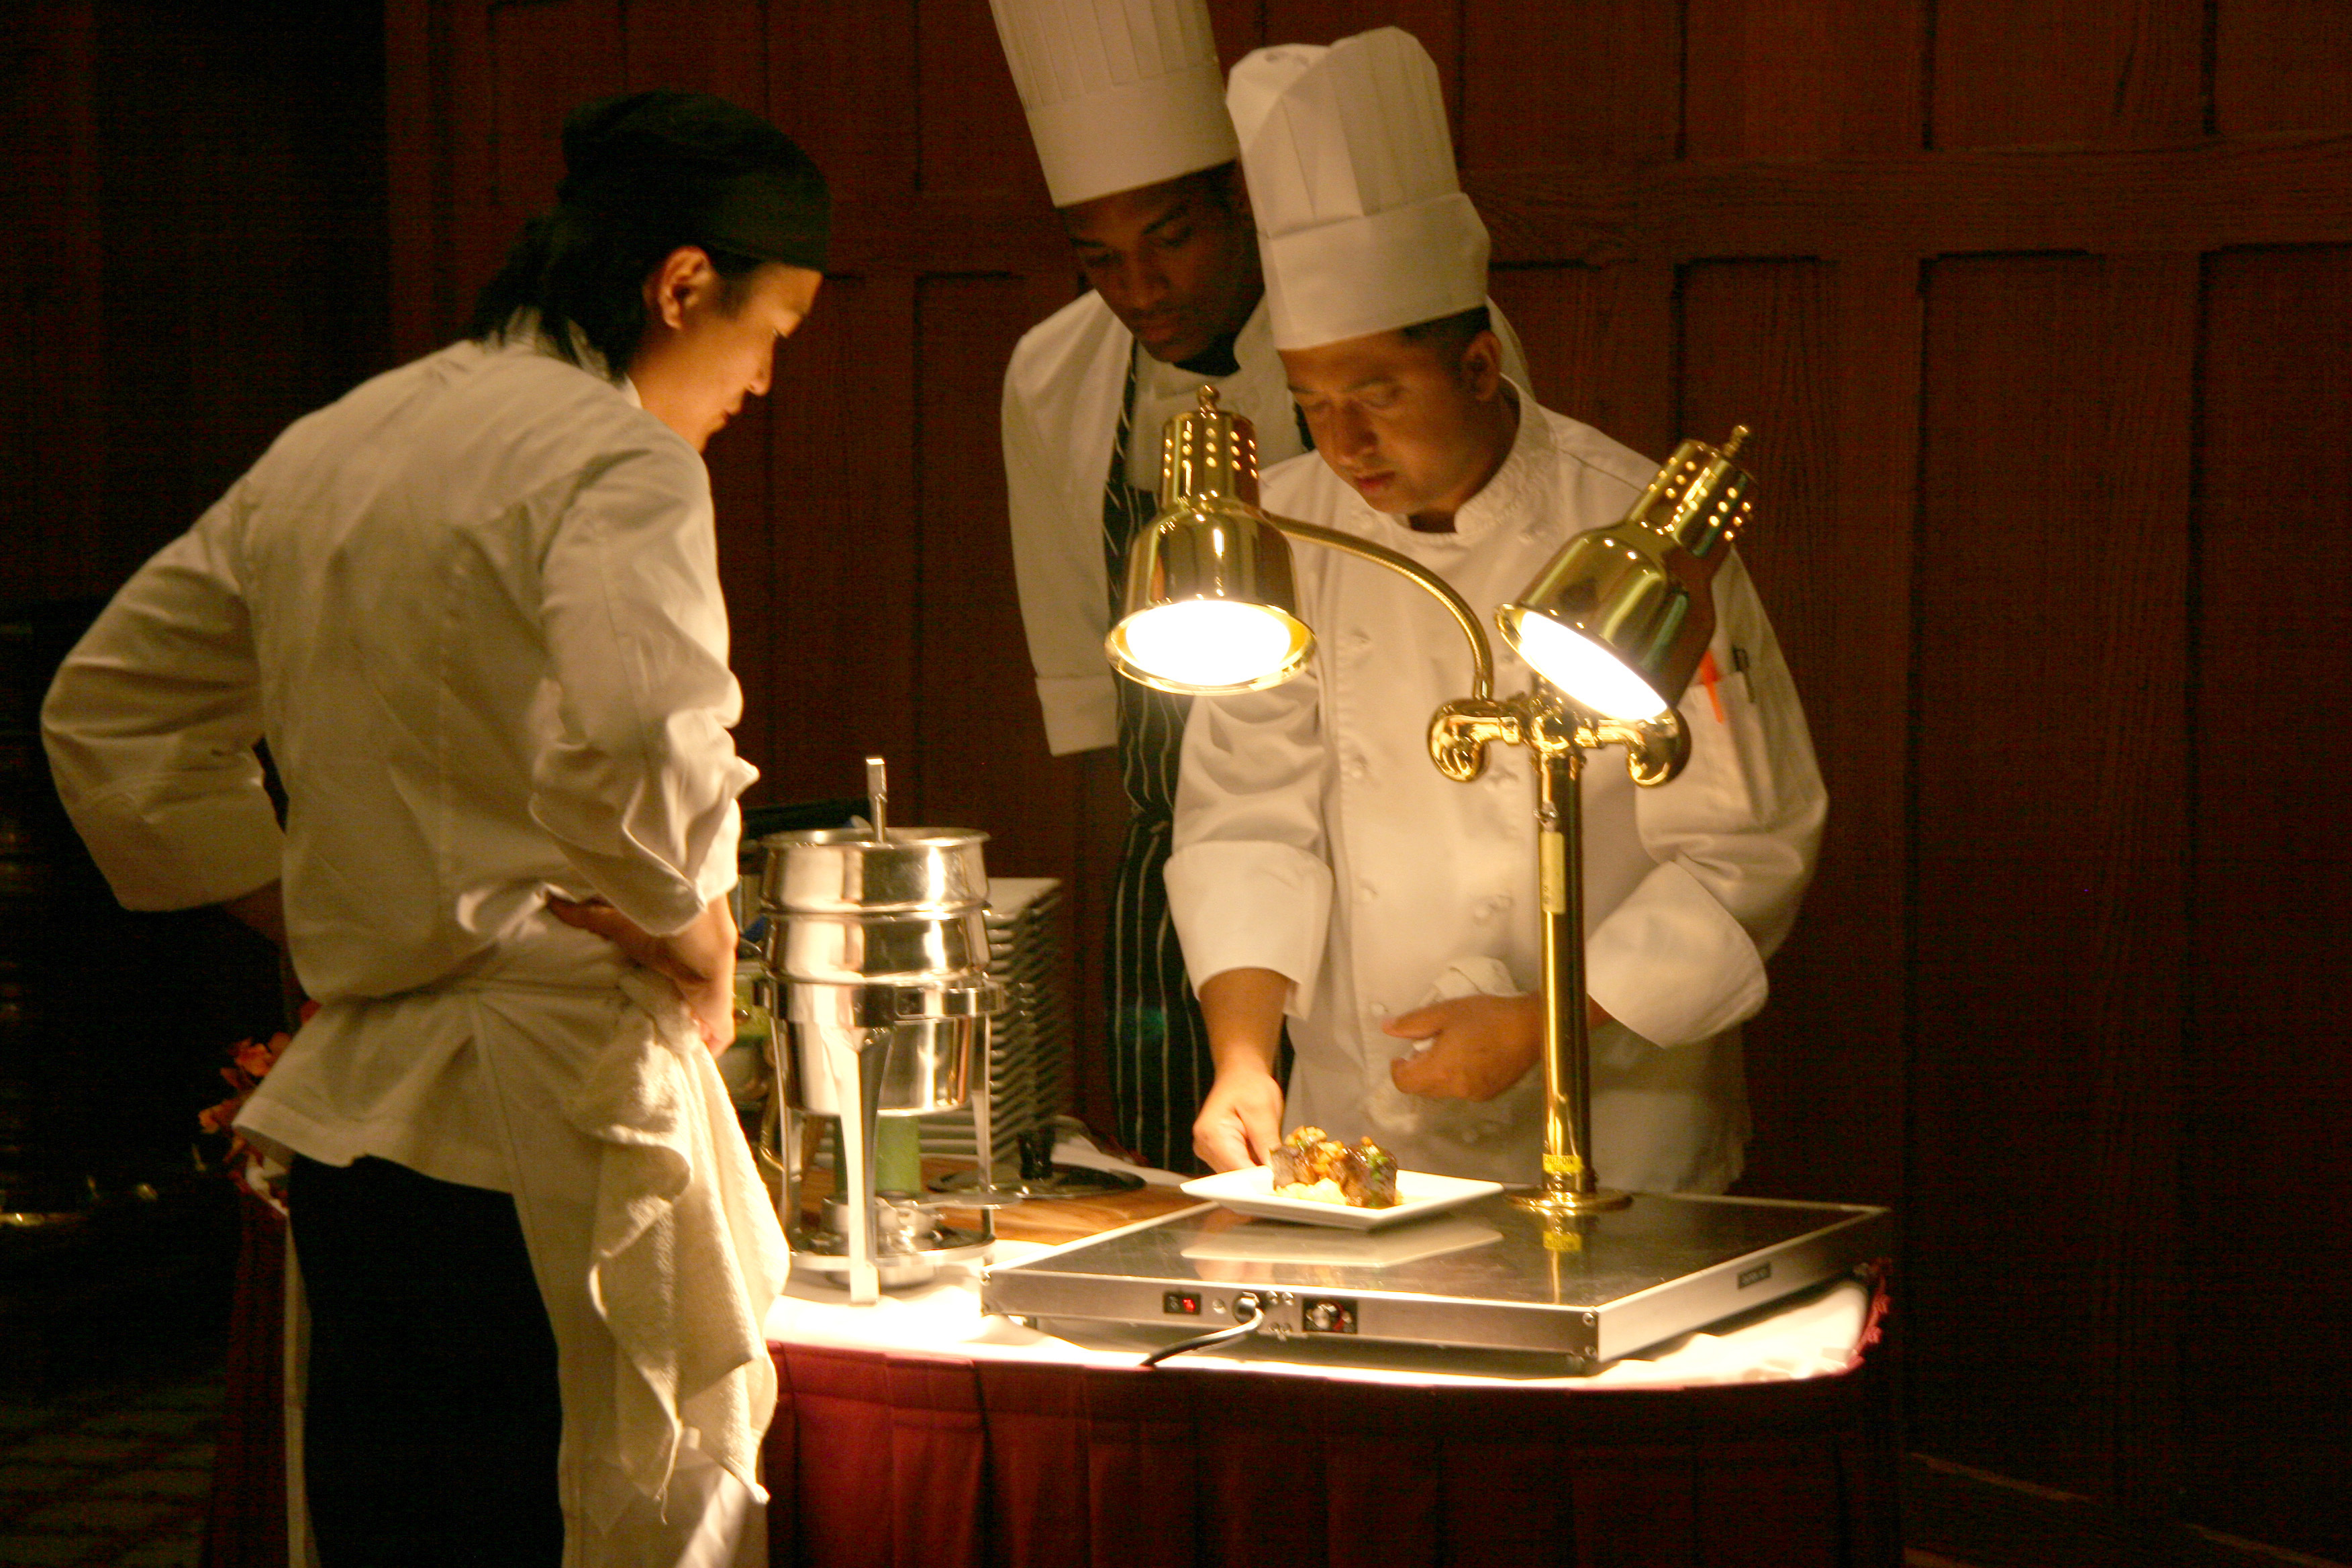 chef nazim khan mentors fellow chefs at an action station before a